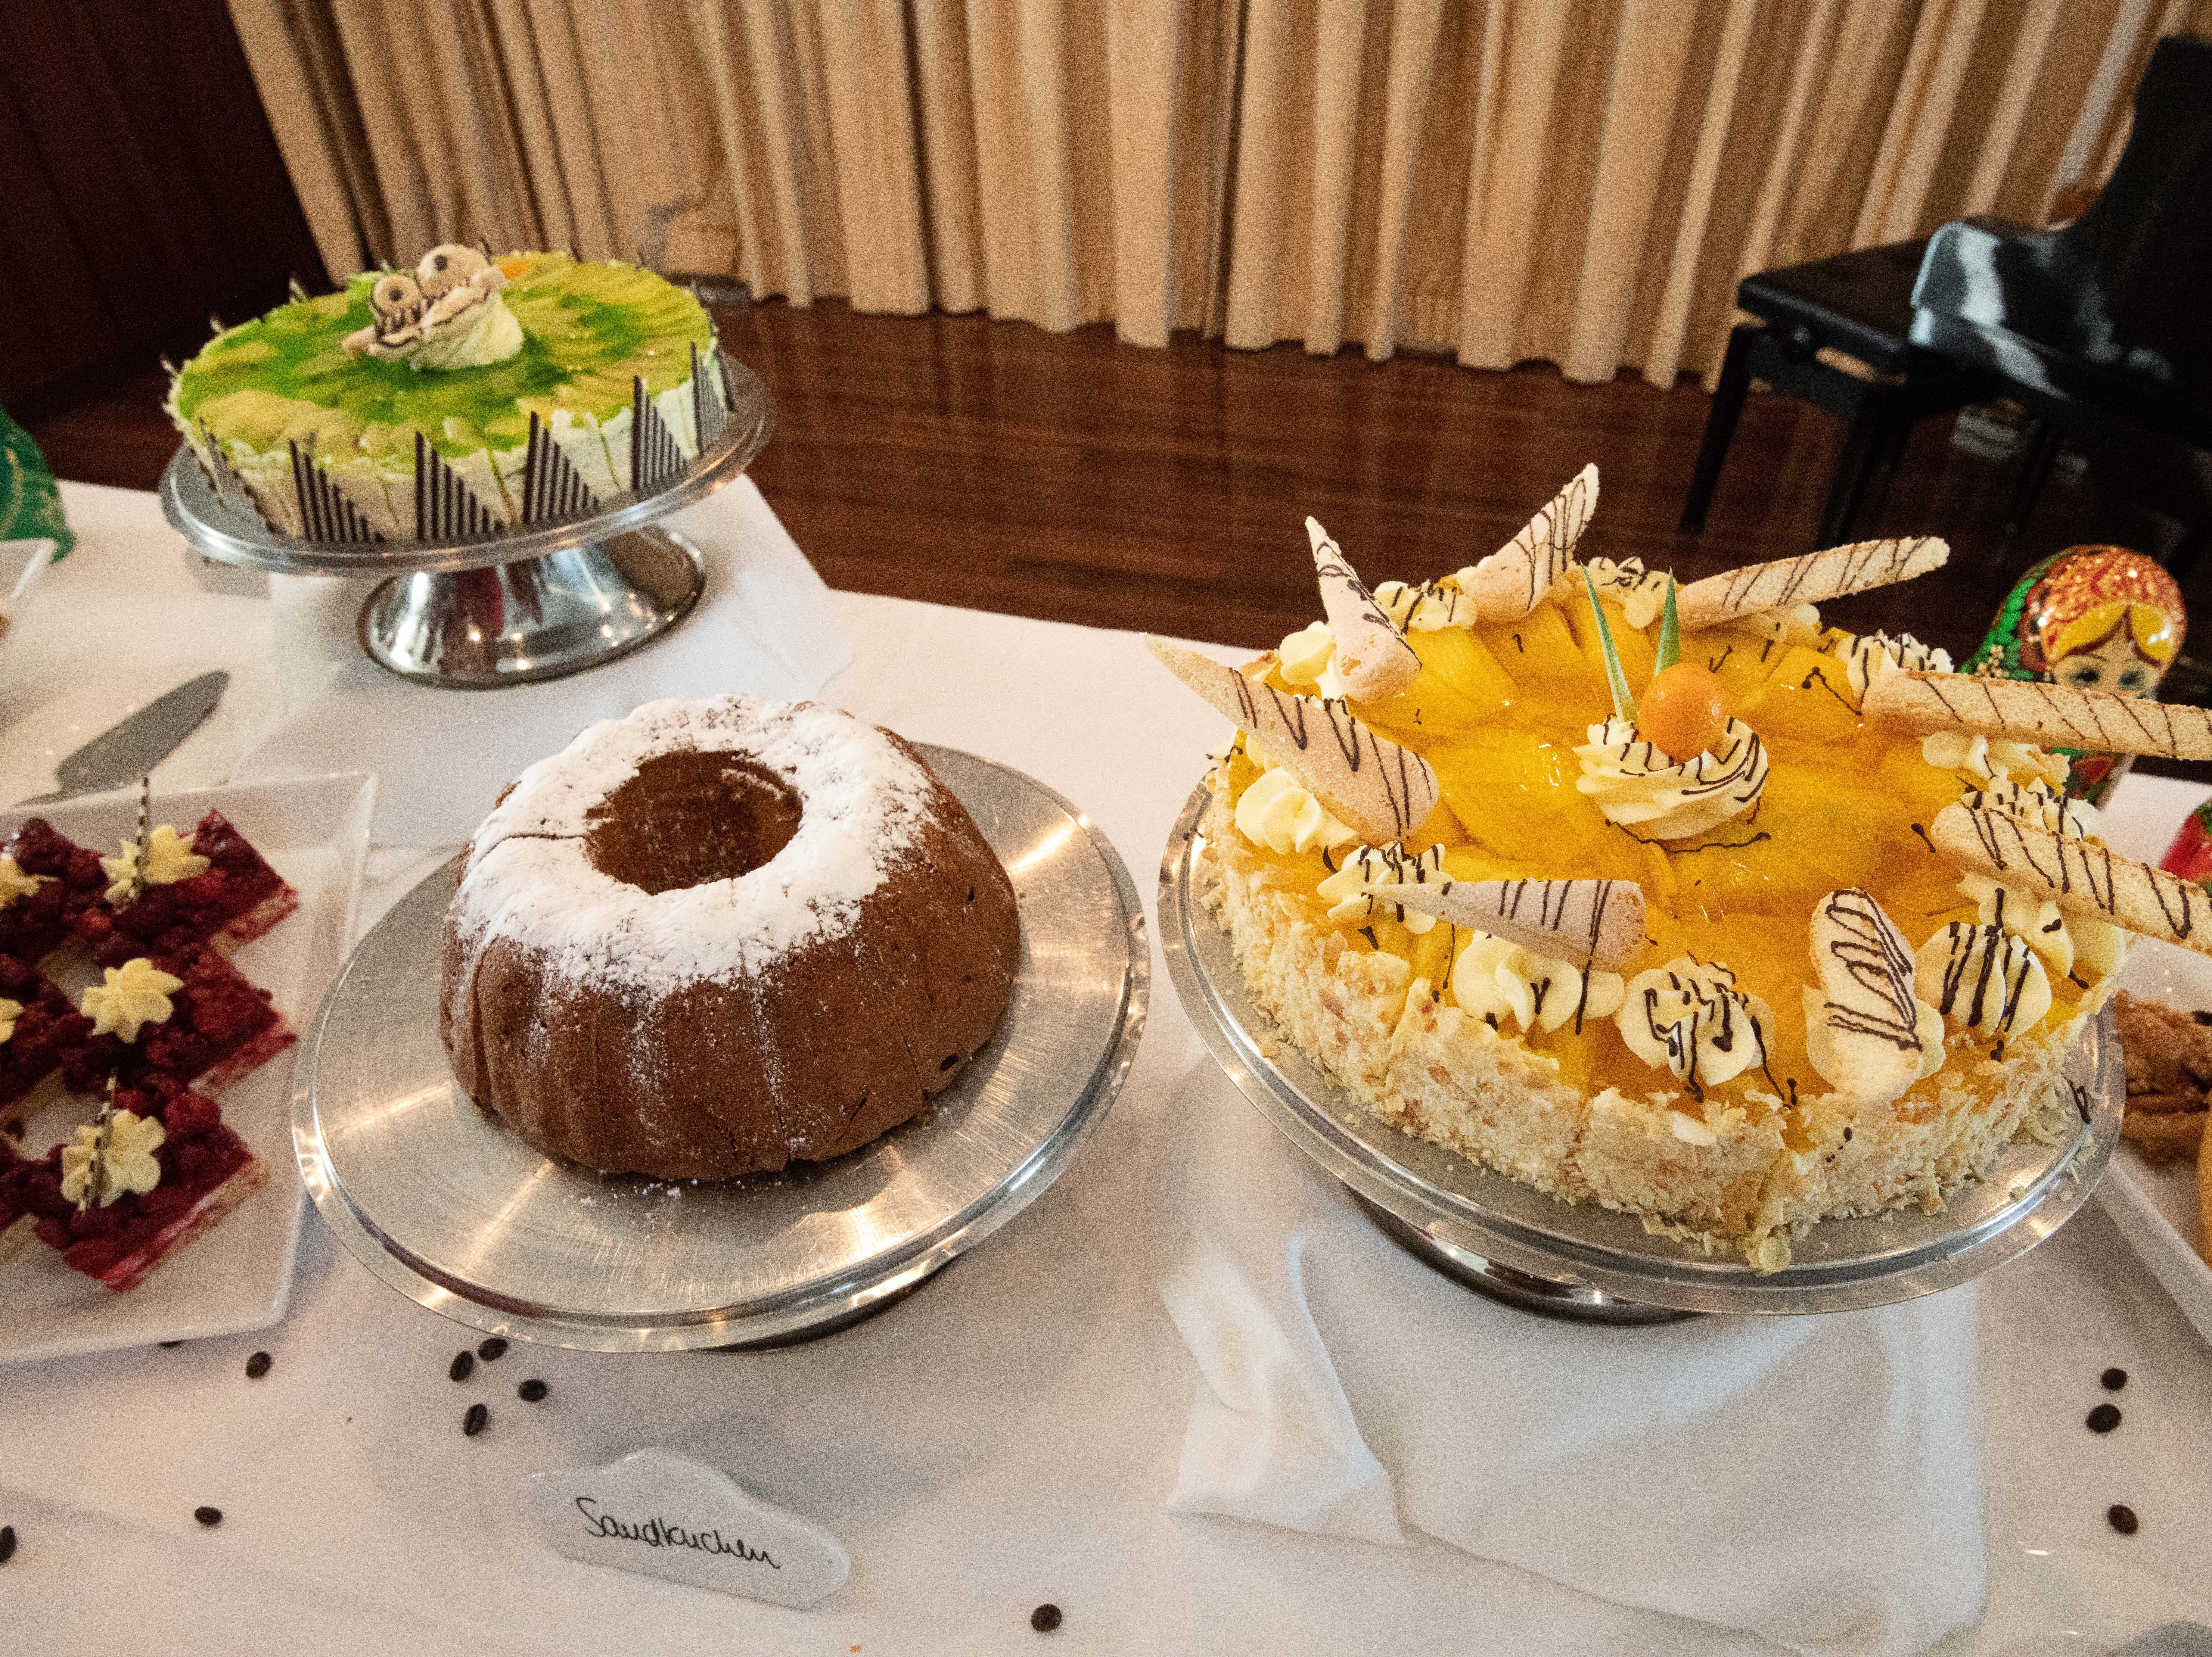 Tea time with elegant cakes and pastries in the Bremen Club lounge is a Bremen tradition.